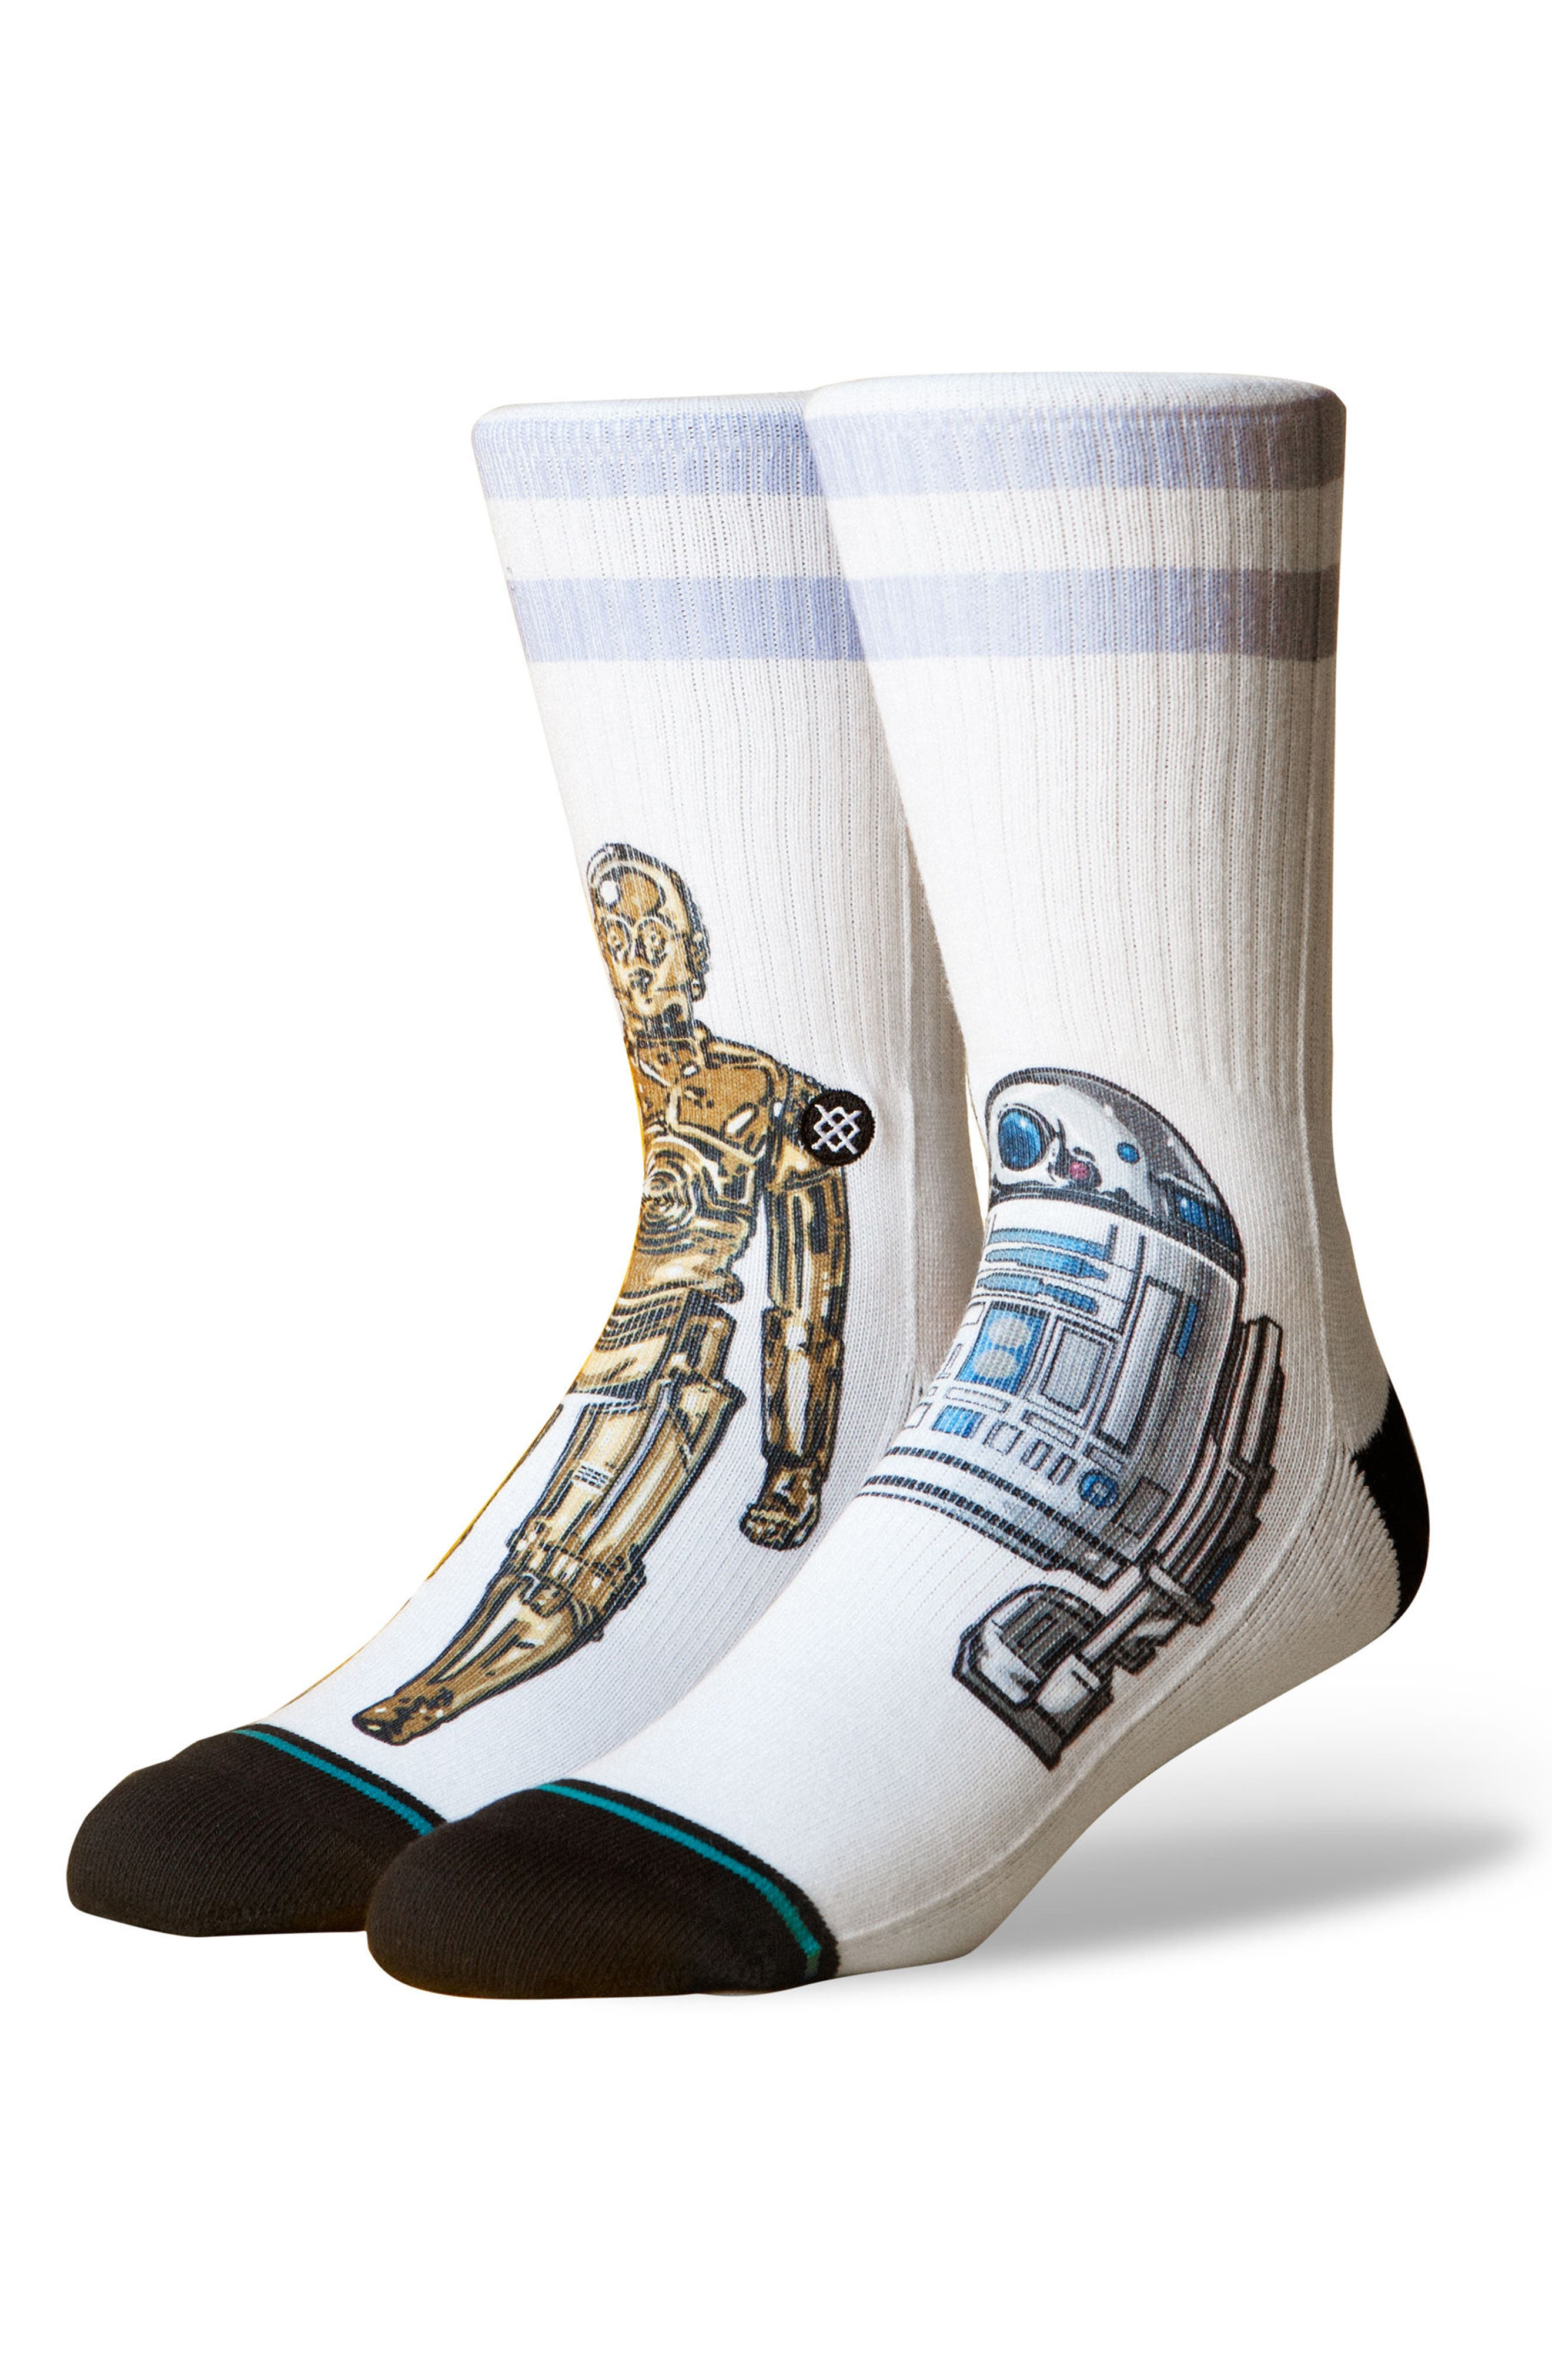 Star Wars<sup>™</sup> Prime Condition Socks,                             Main thumbnail 1, color,                             100